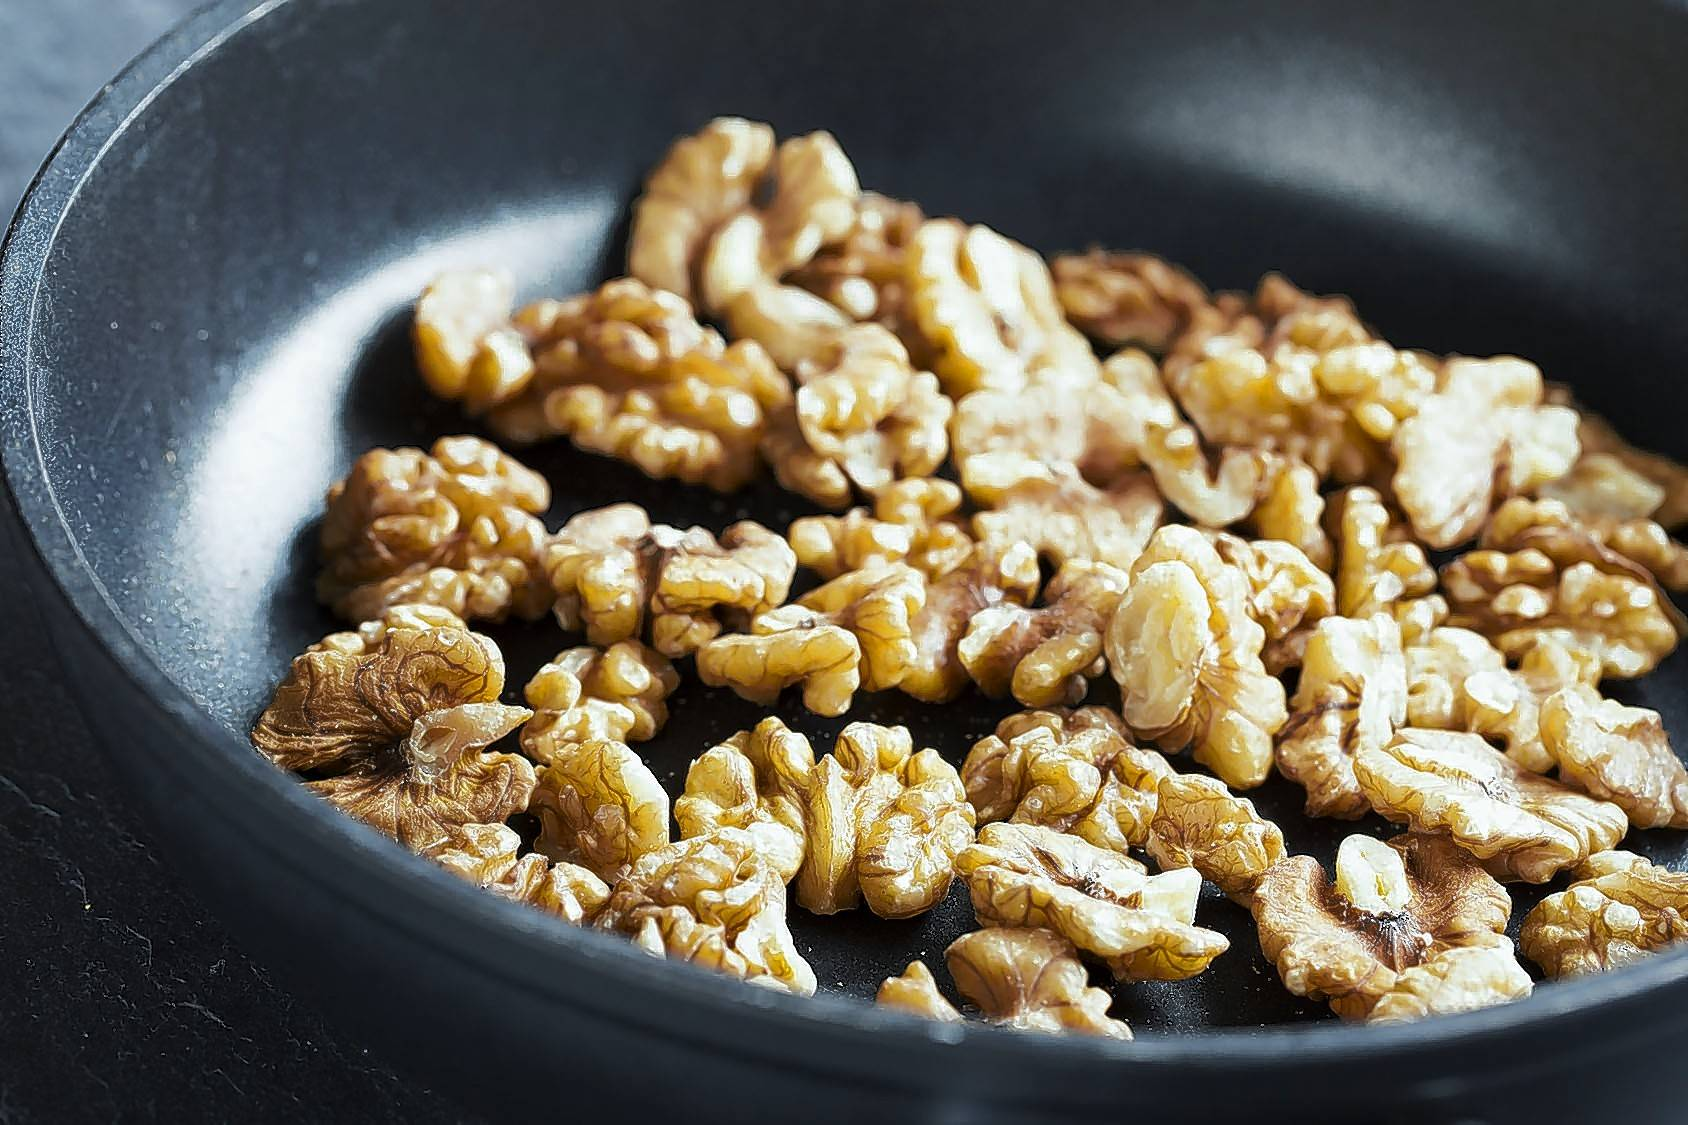 Nuts and seeds contain a good deal of fat, but it's fat that lowers heart disease risk.